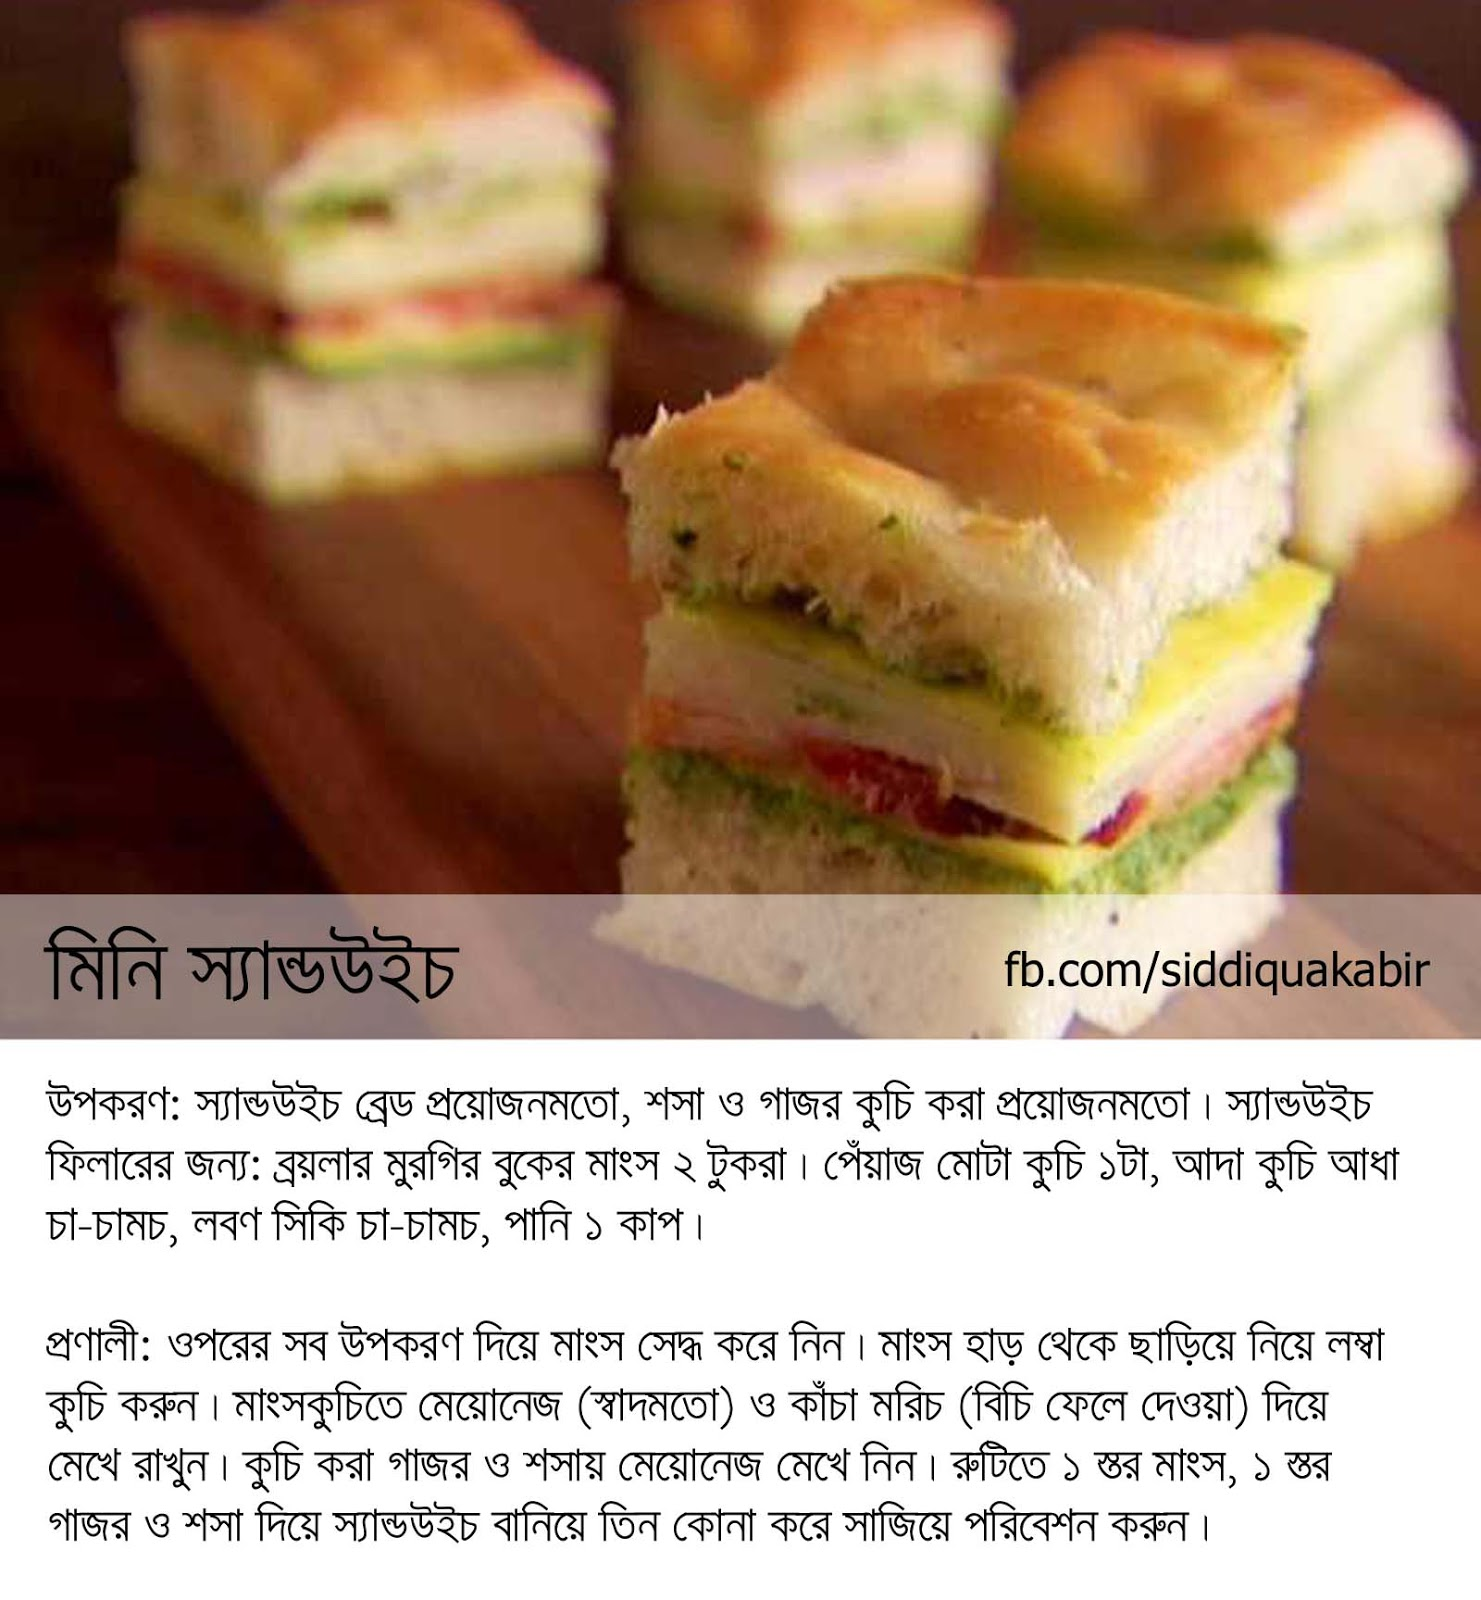 Siddiqua kabir mini sandwiche in bangla font mini sandwiche in bangla font forumfinder Choice Image